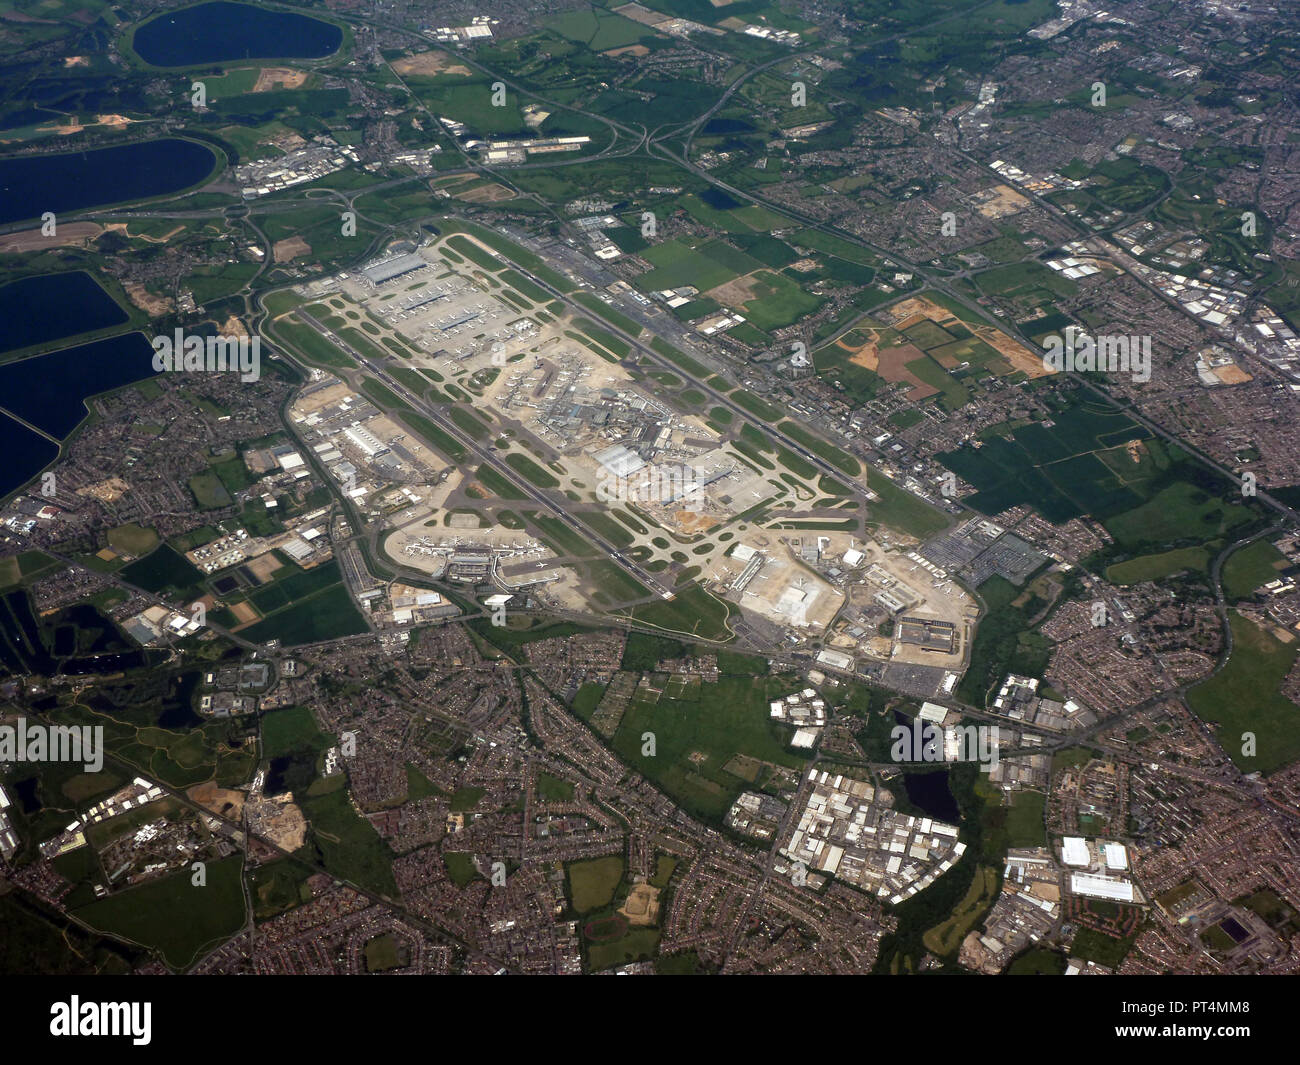 Heathrow Airport, seen from the air. - Stock Image